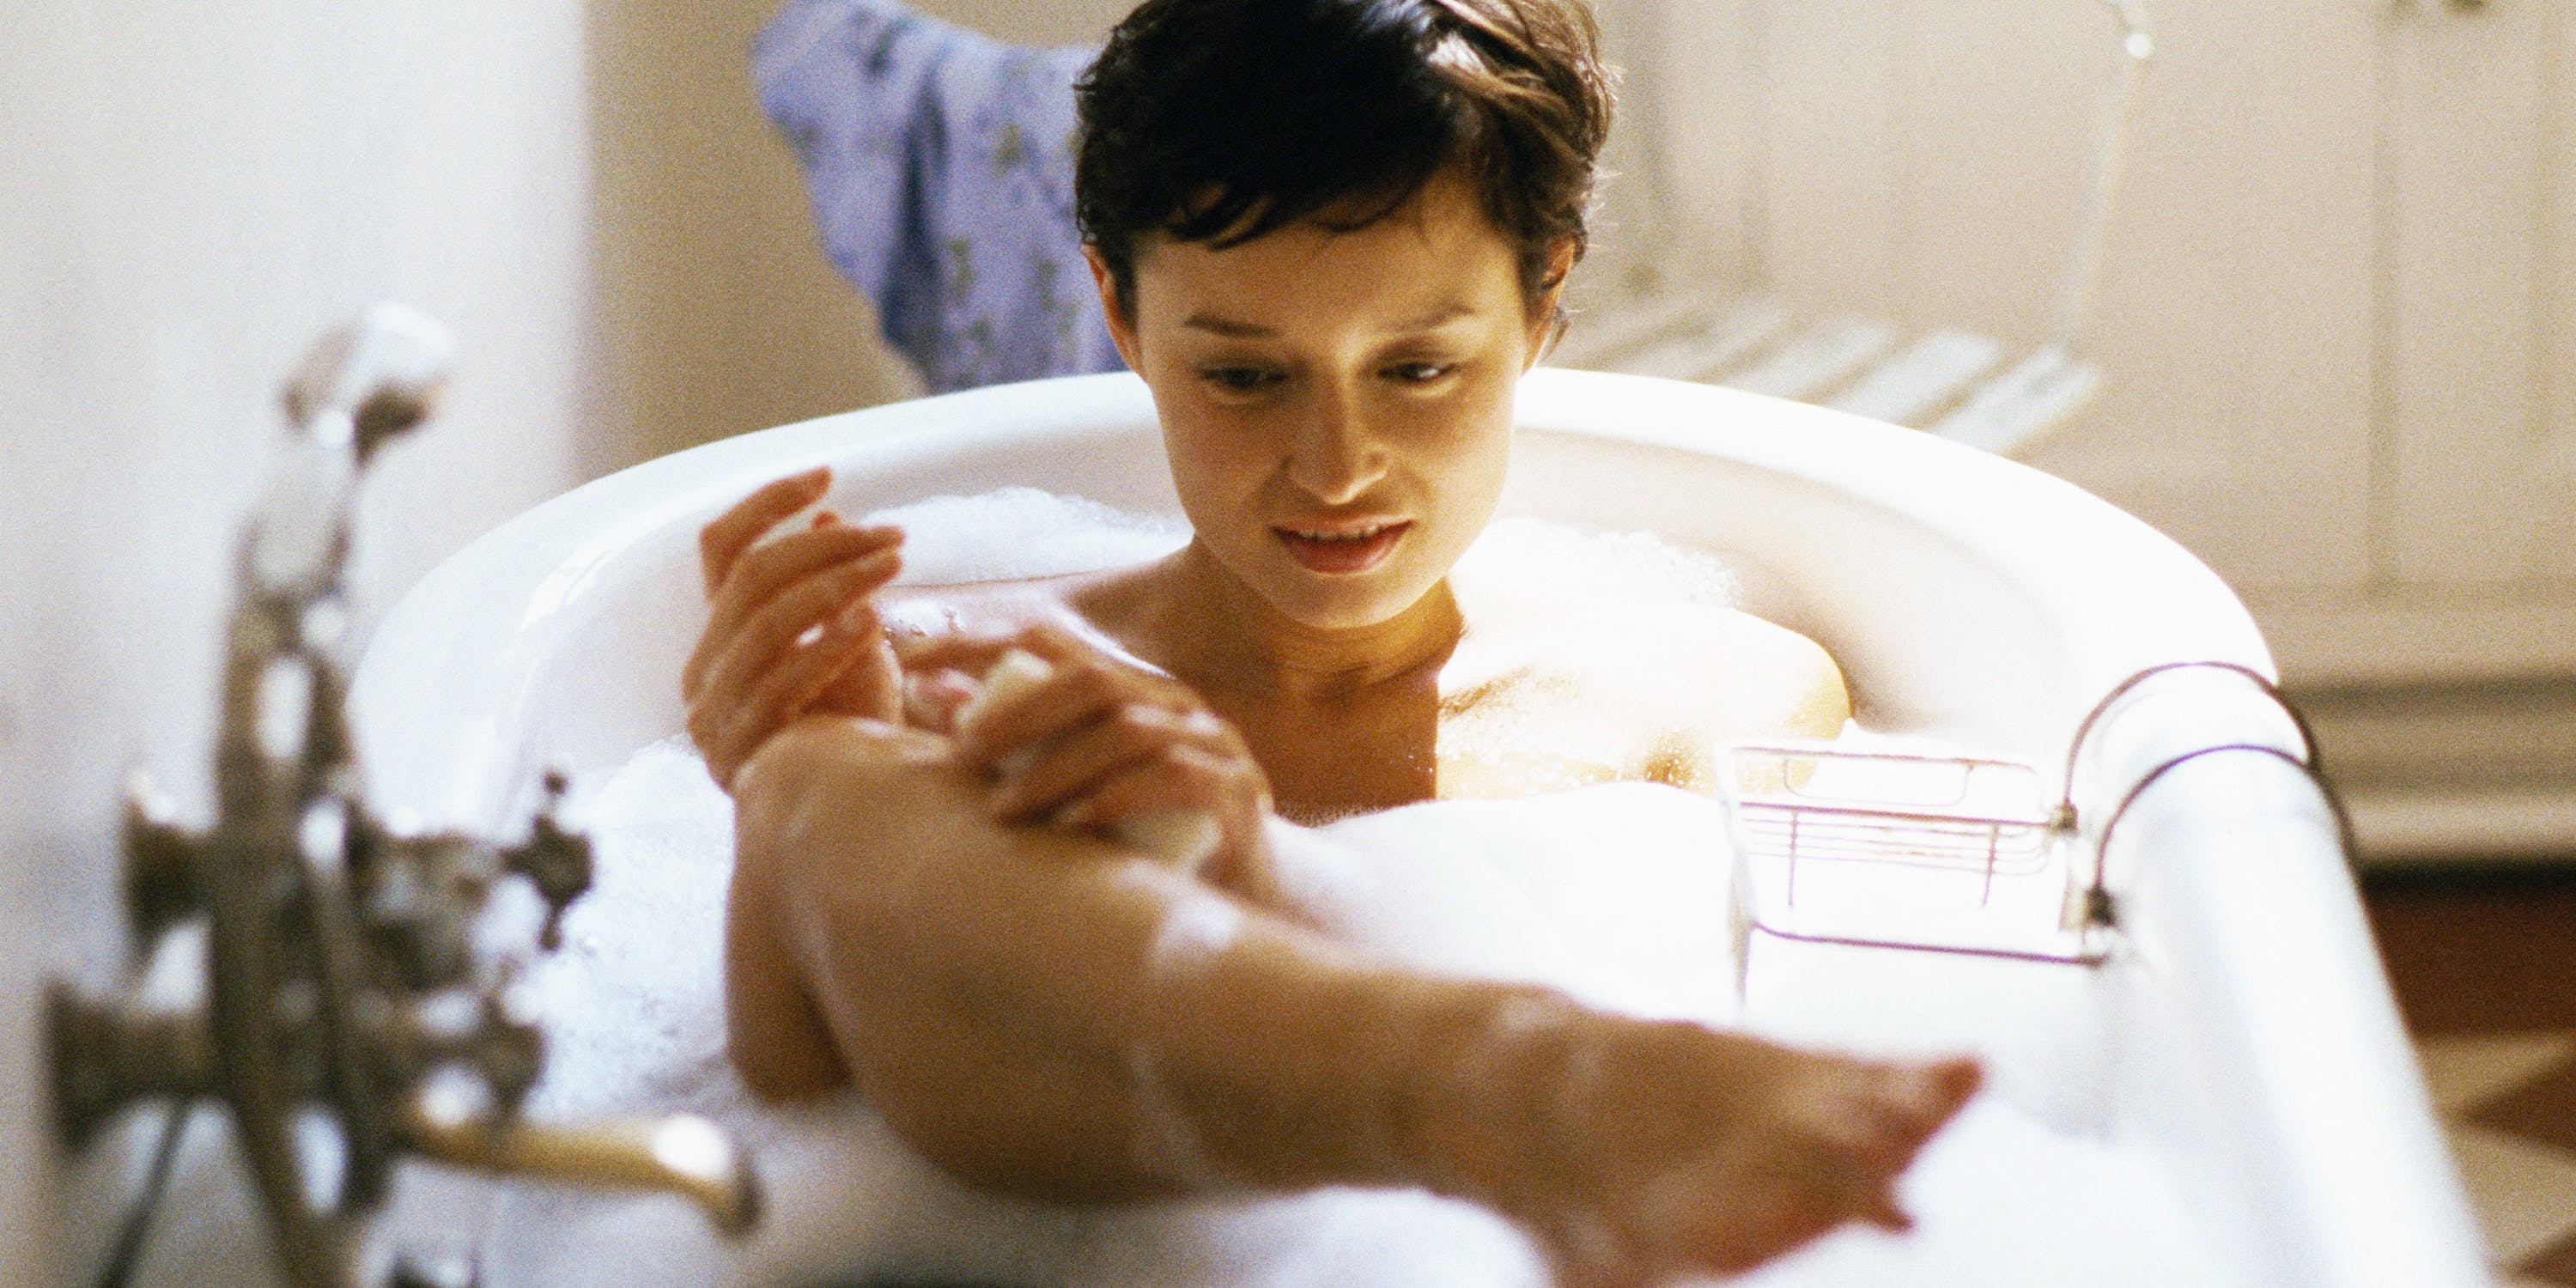 Woman taking bath, holding leg out of water